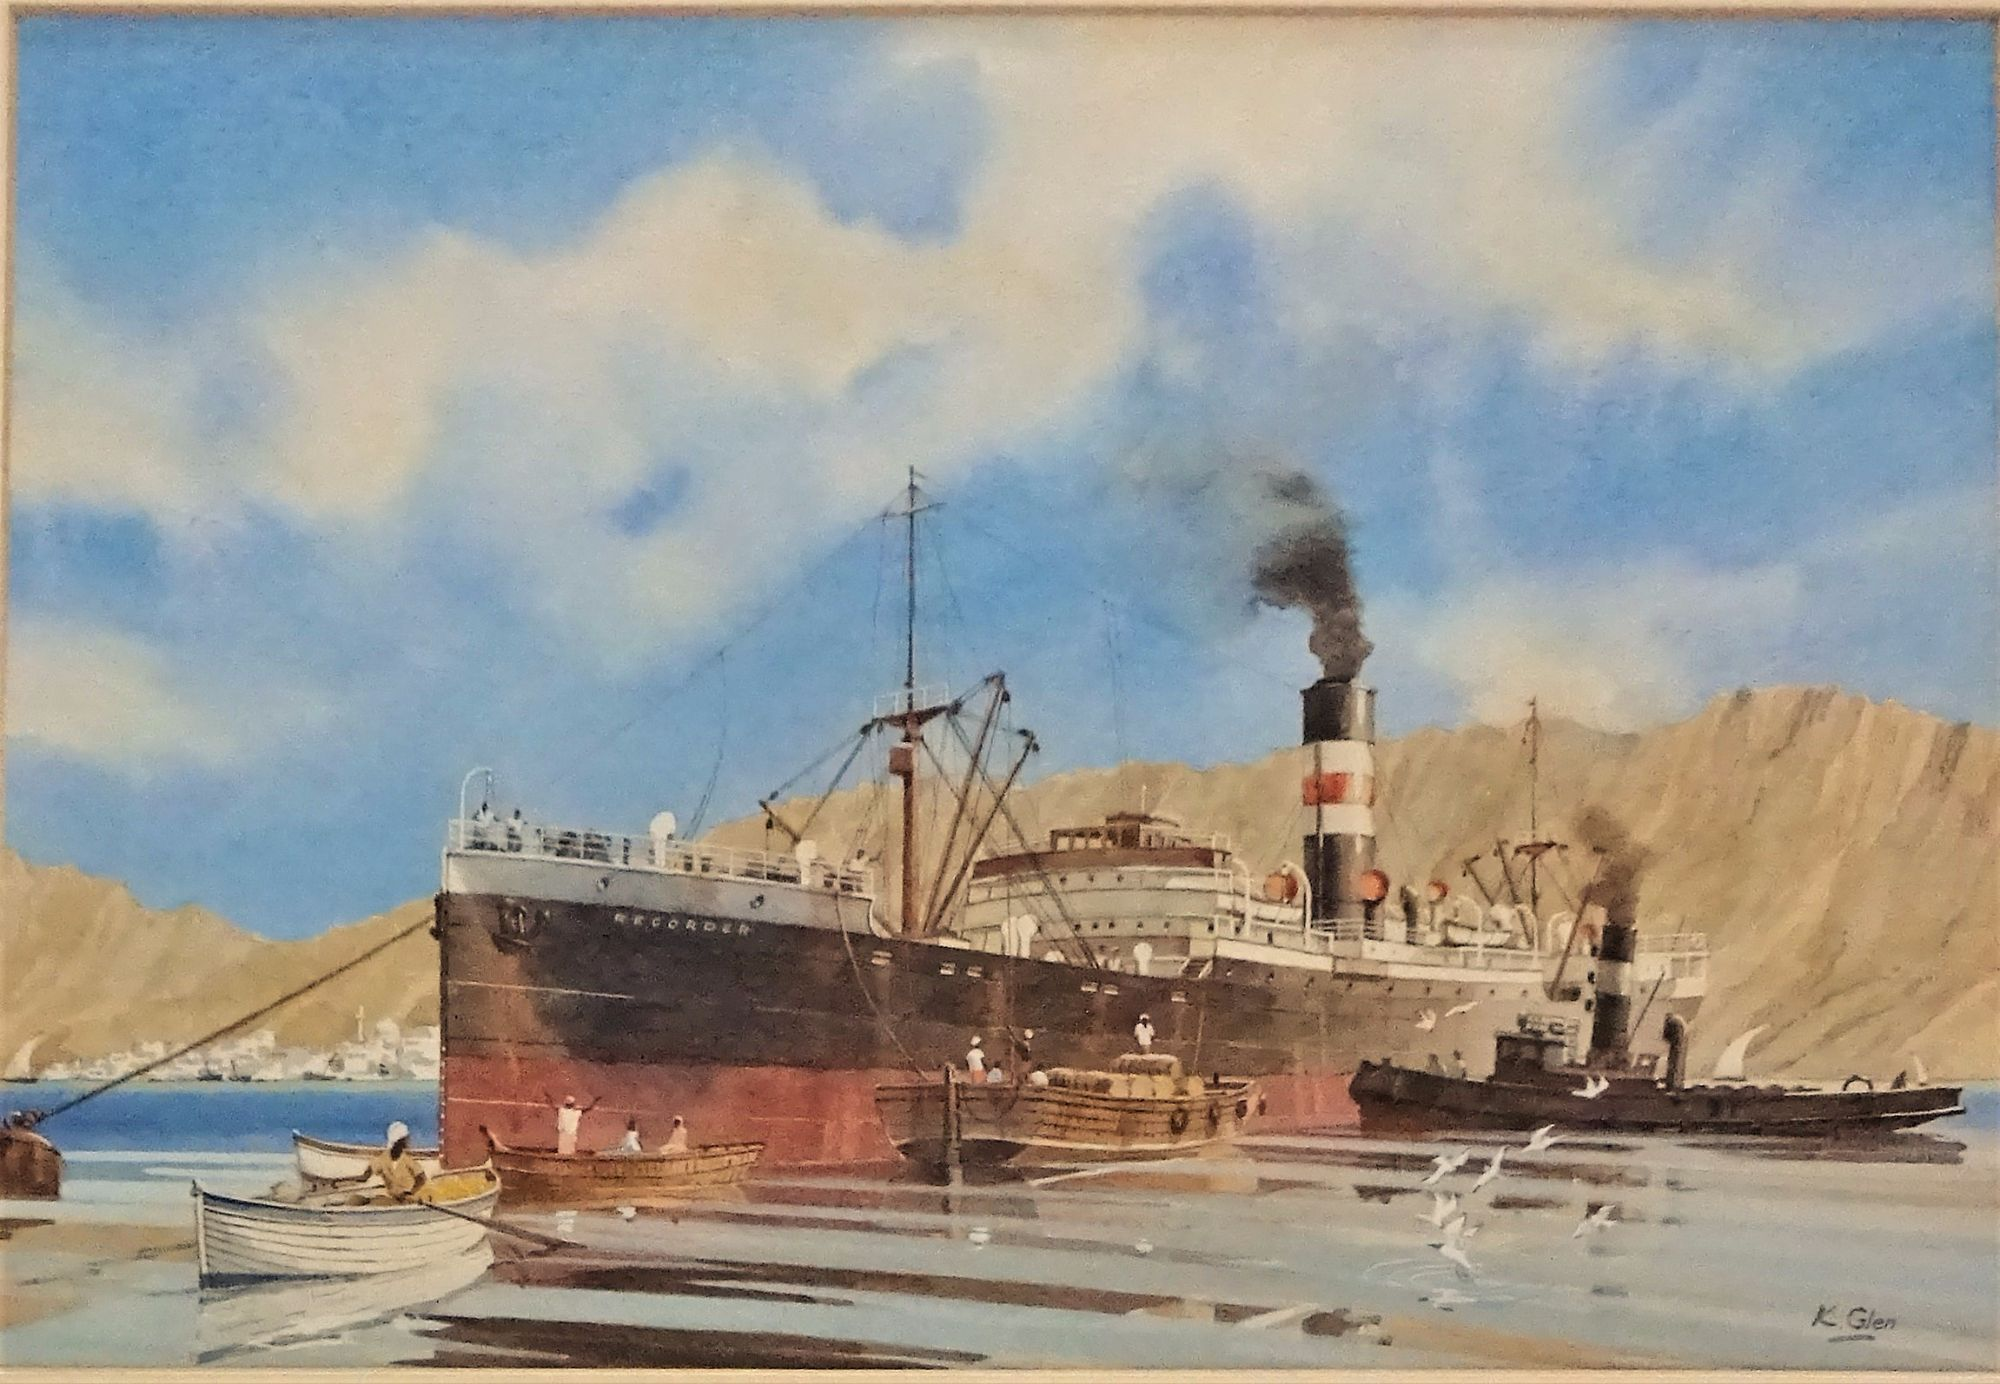 ss Recorder, Muscat, watercolour, signed K. Glen c1985.